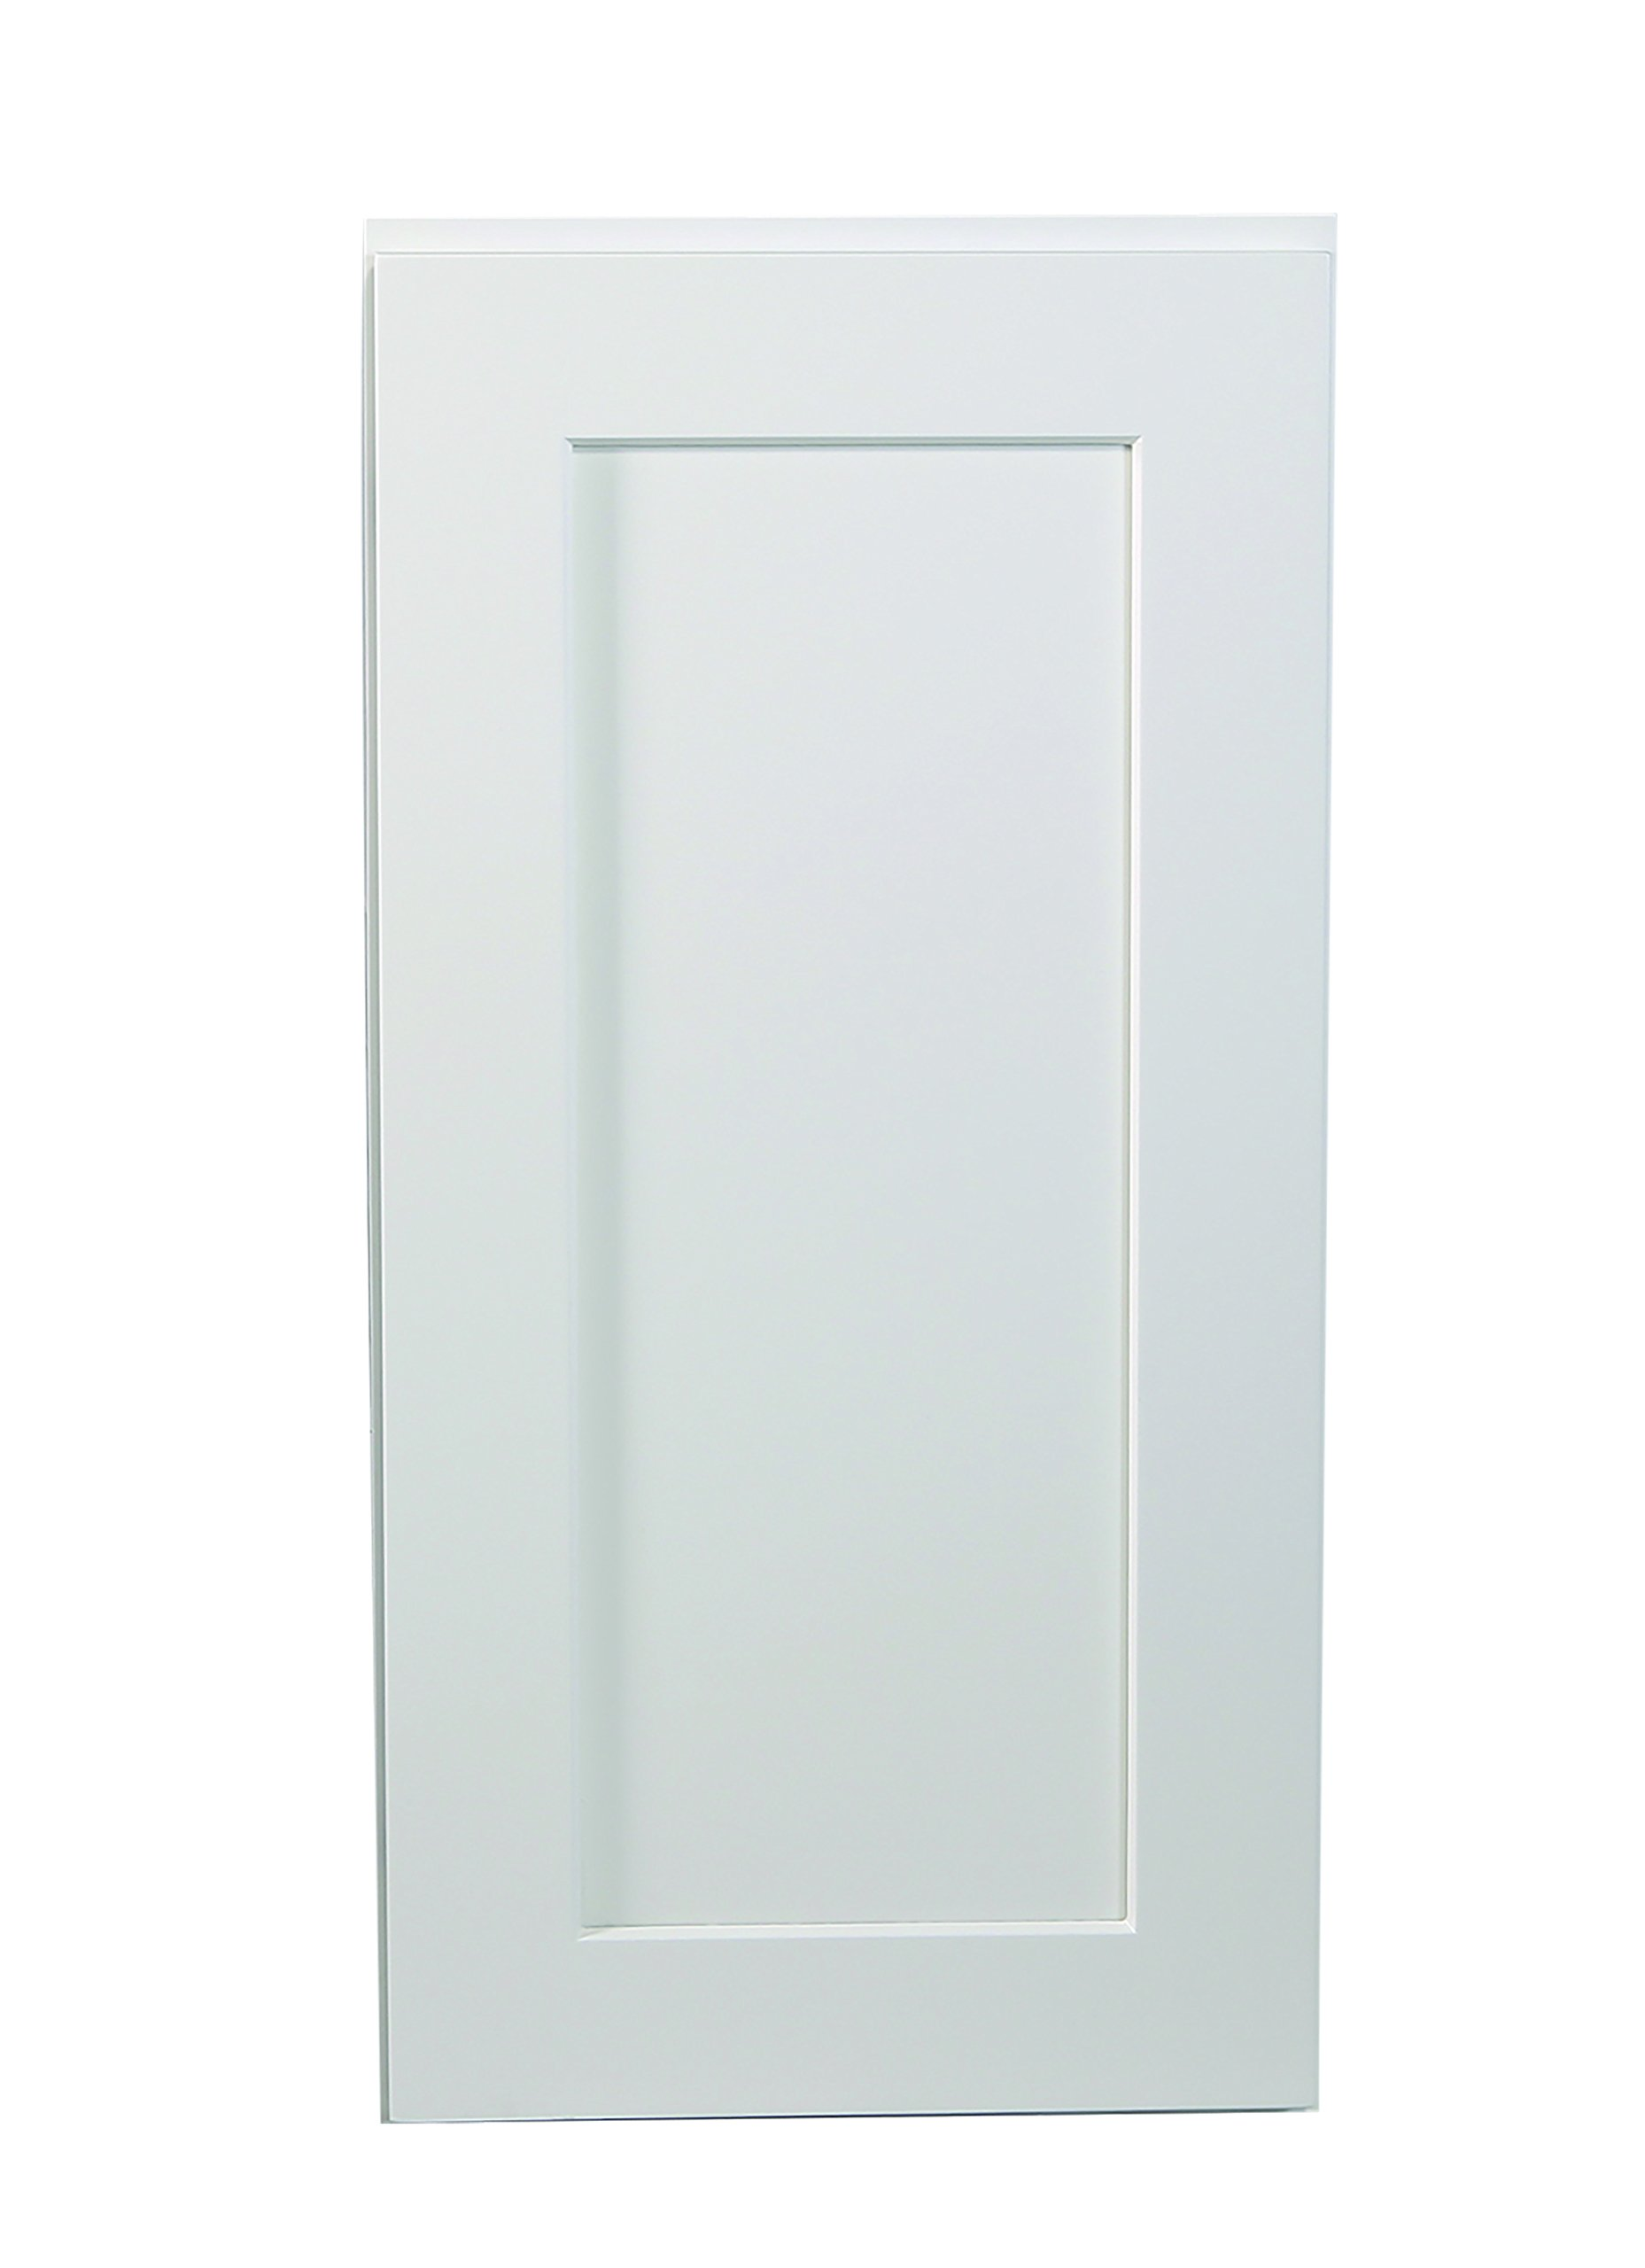 Design House 569079 Brookings Fully Shaker Wall 18x36x12, White Assembled Kitchen Cabinets,